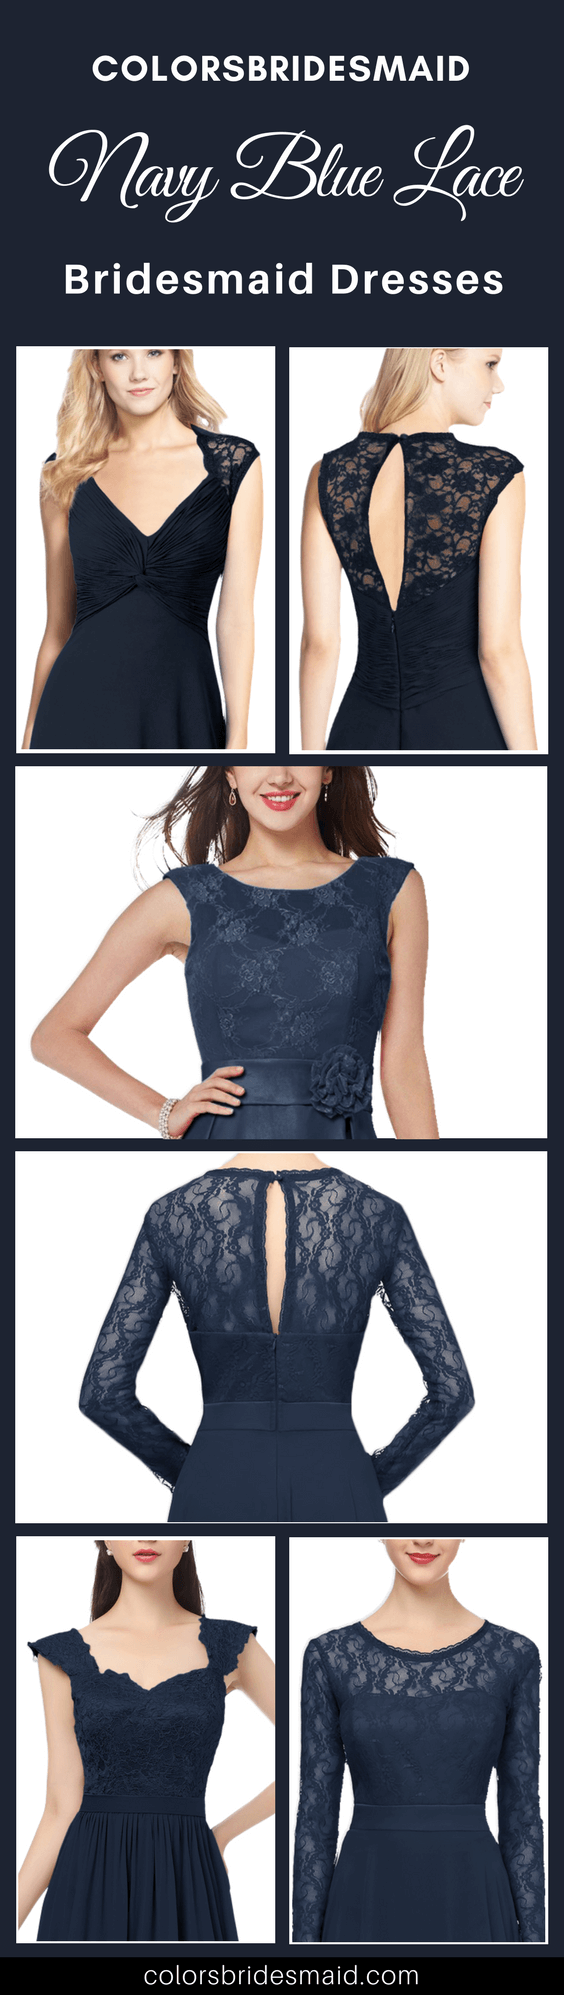 4 Unique Navy Blue Lace Bridesmaid Dresses In 2018 New Styles Colorsbridesmaid